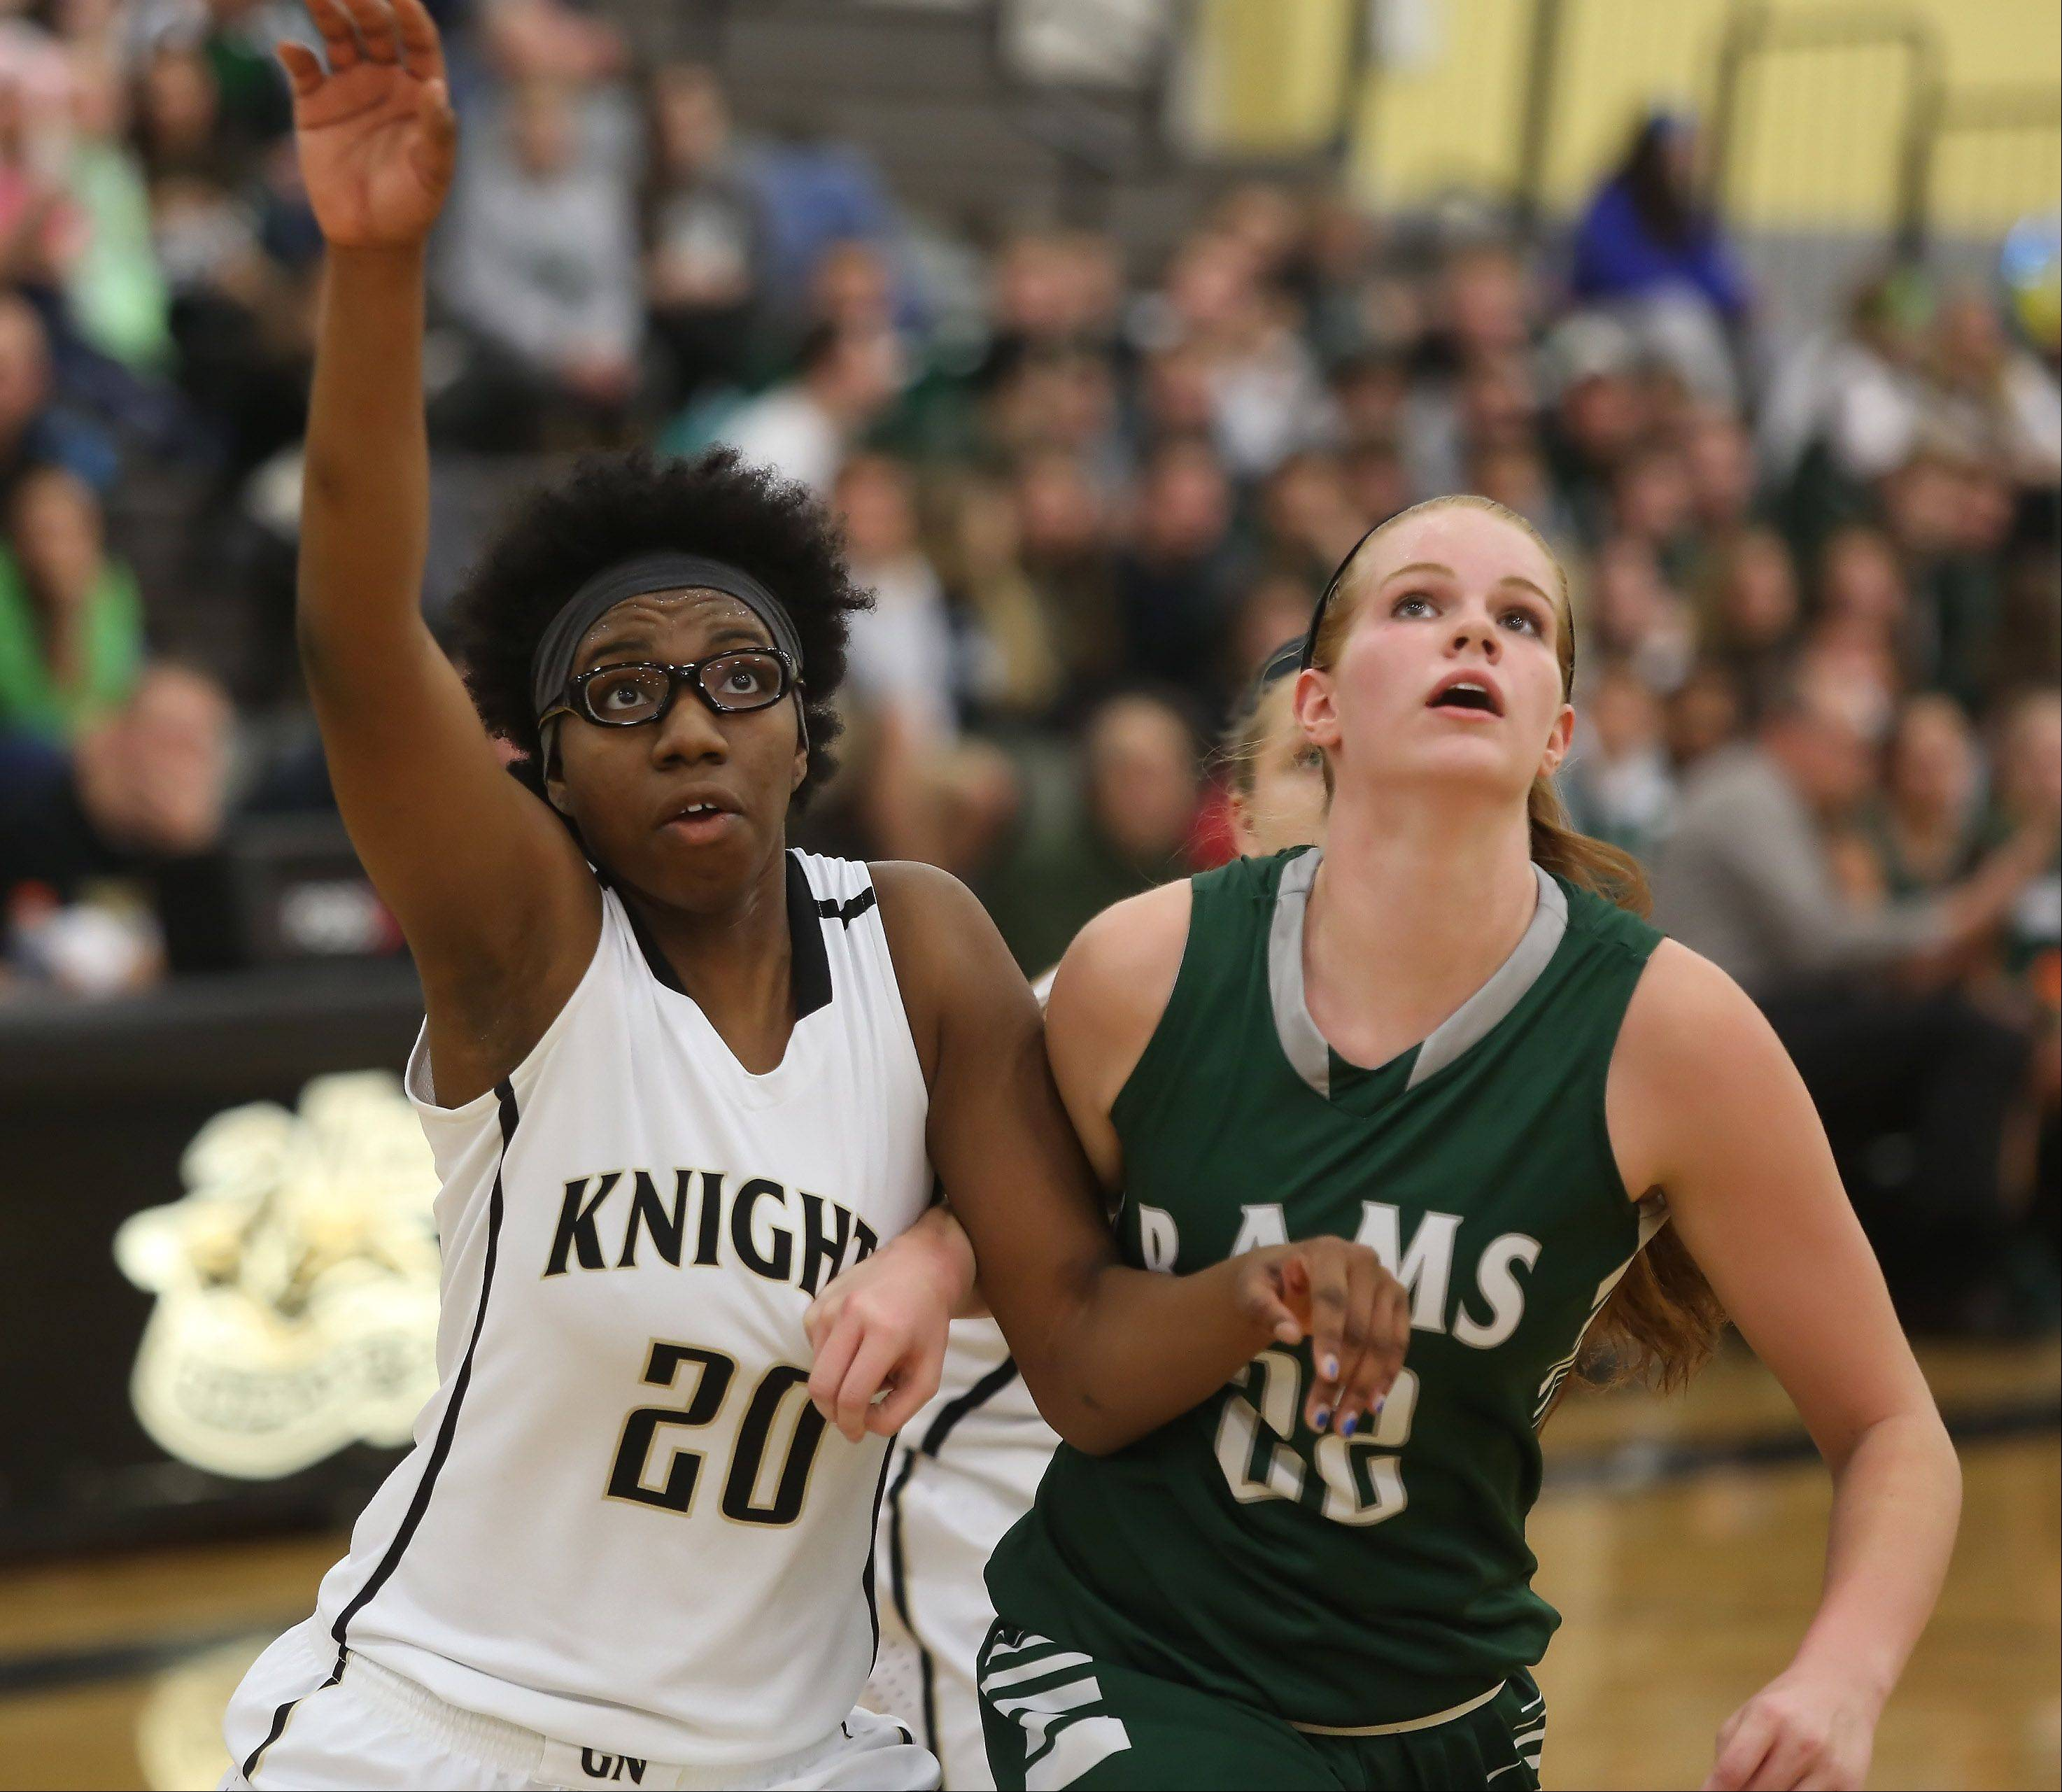 Grayslake North forward Brittney Thibeaux, left, battles Grayslake Central forward Morgan Dahlstrom for the rebound Thursday at Grayslake North.